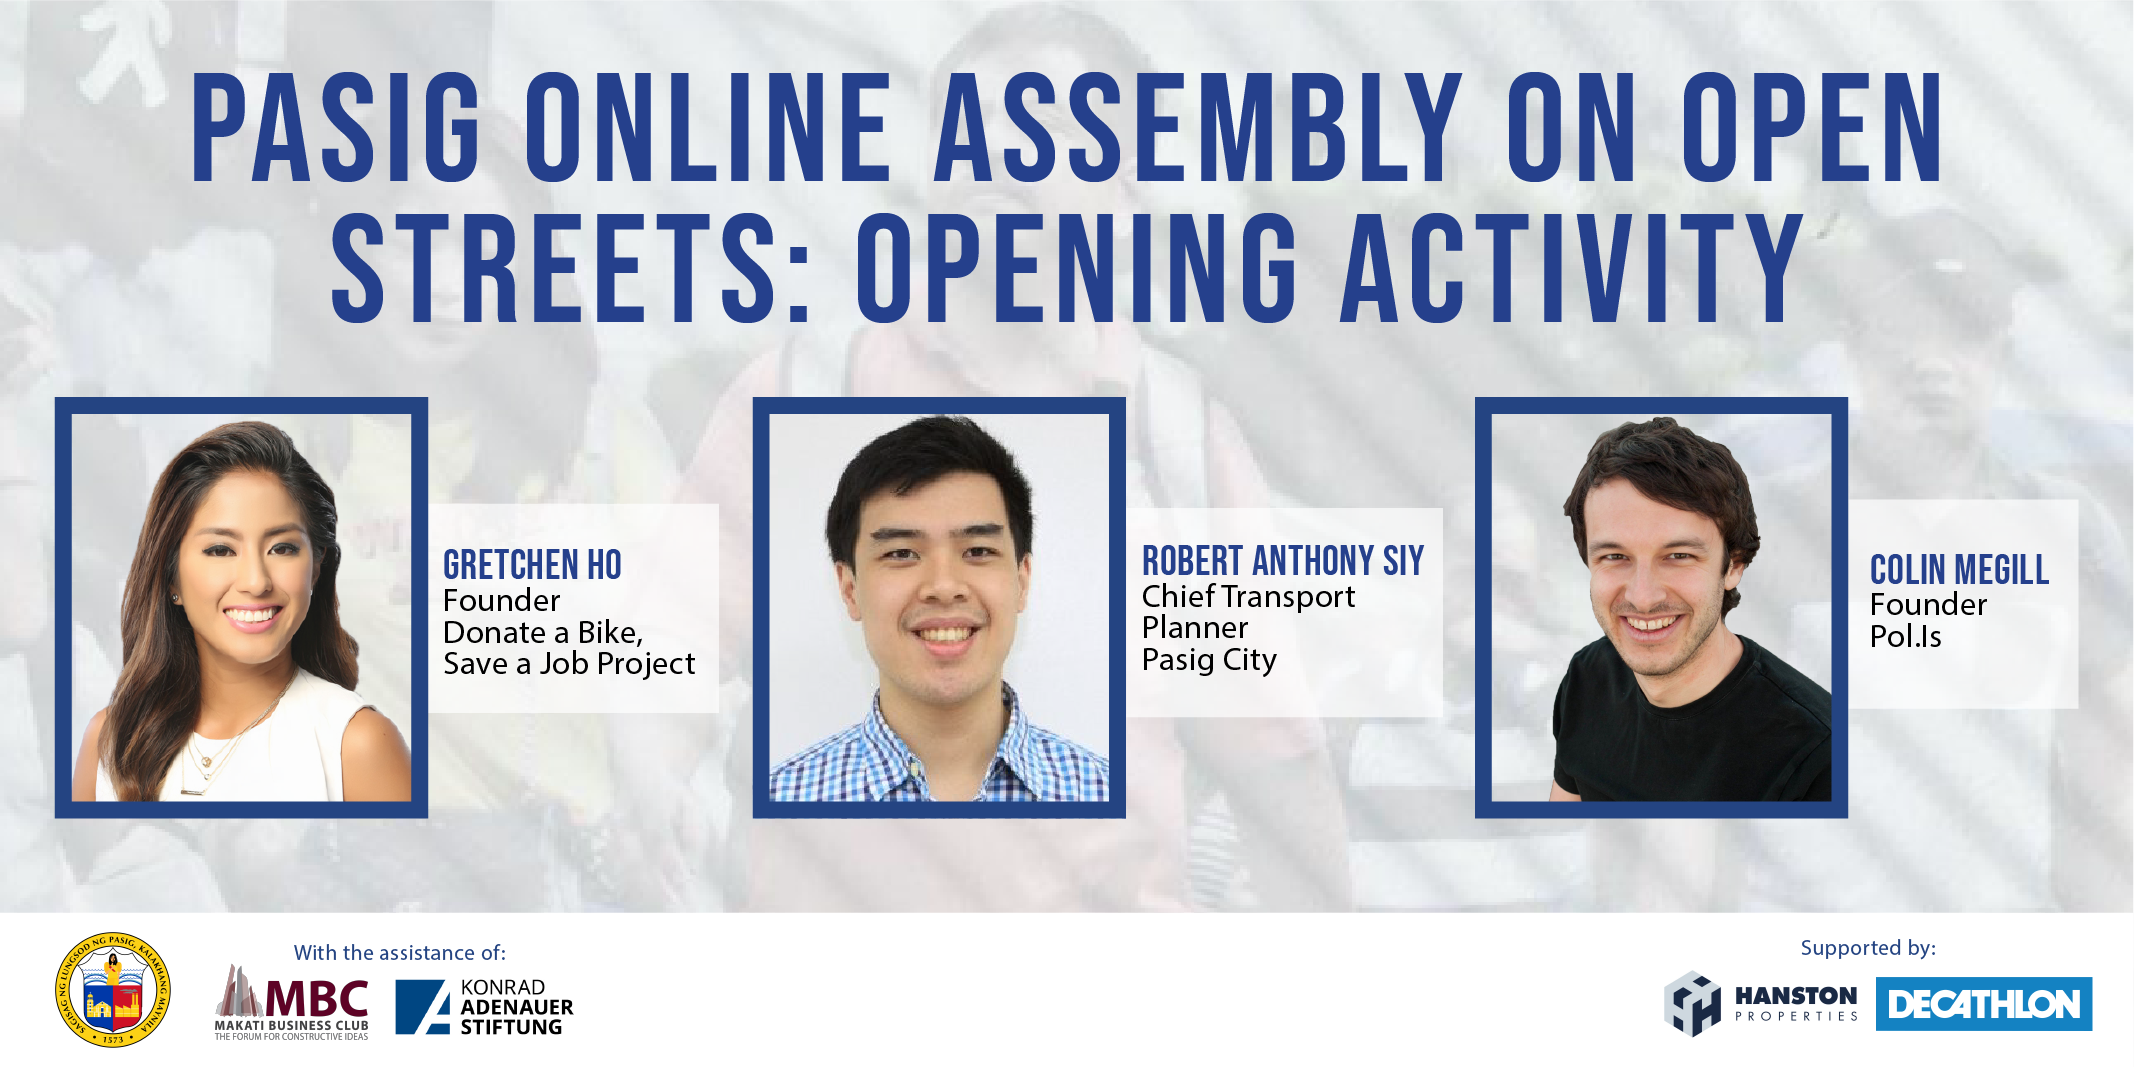 Pasig Online Assembly On Open Streets: Opening Activity